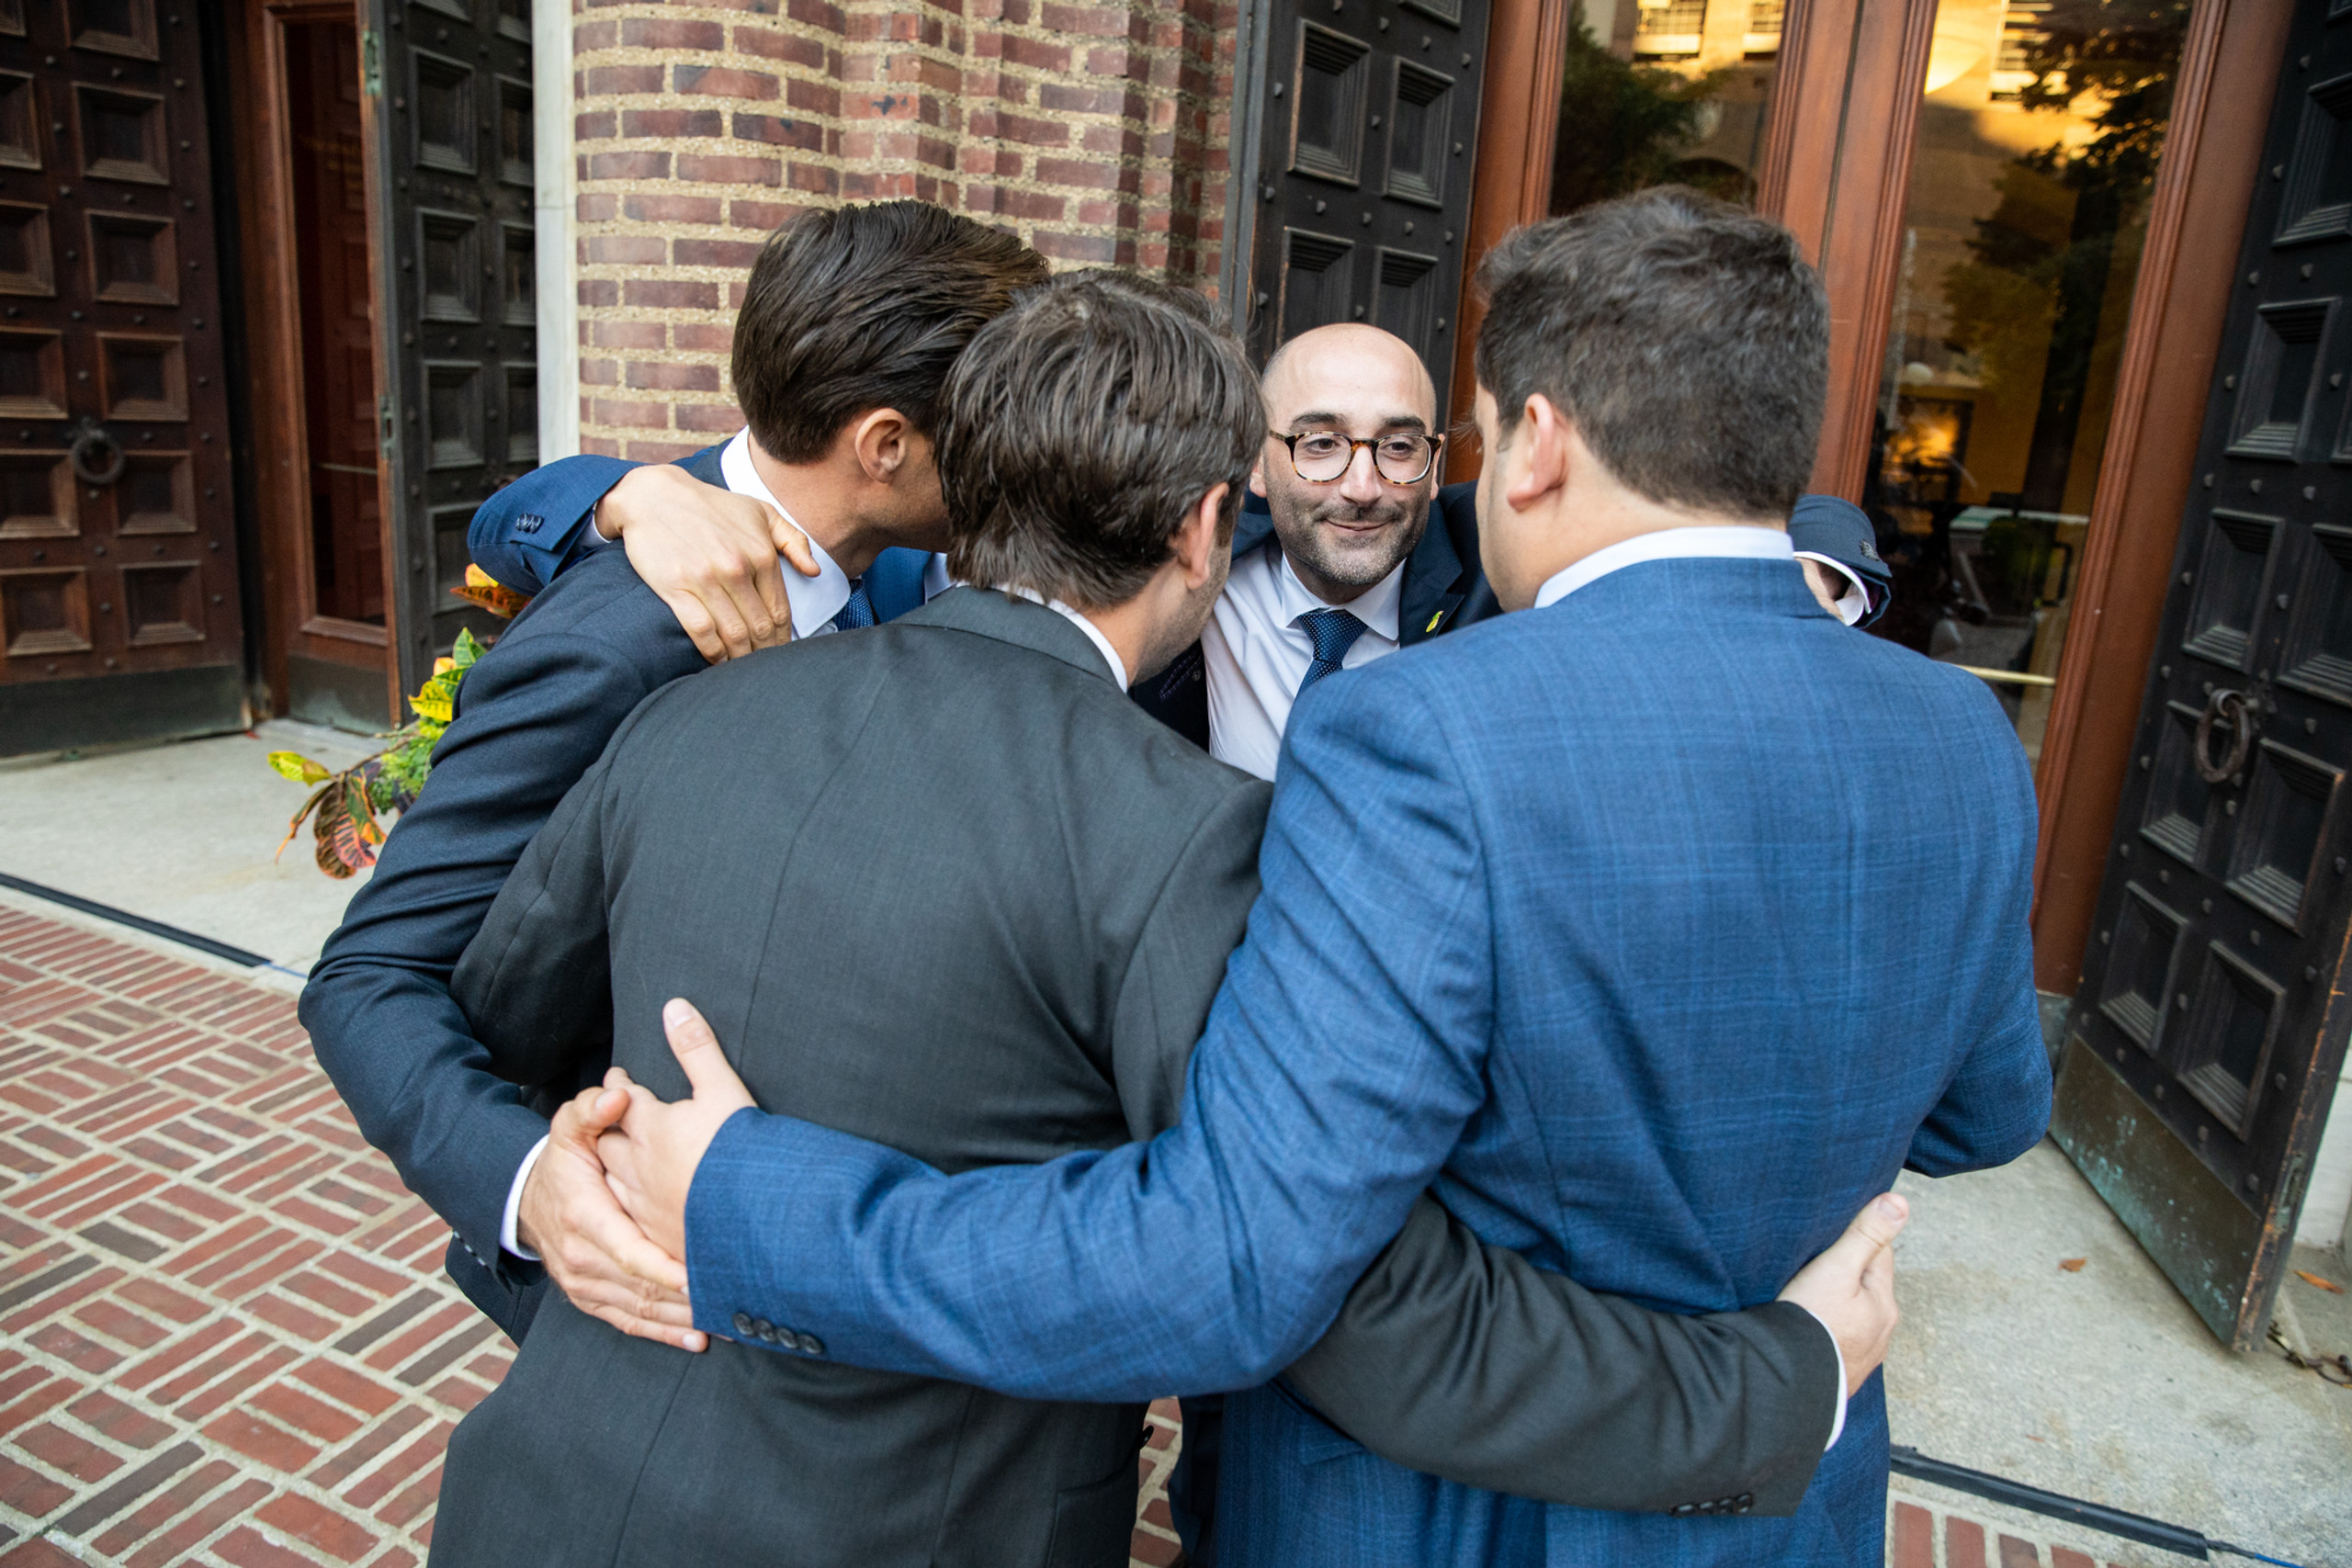 The groom's closest friends huddle up before the wedding ceremony at the Penn Museum in Philadelphia, Pennsylvania.